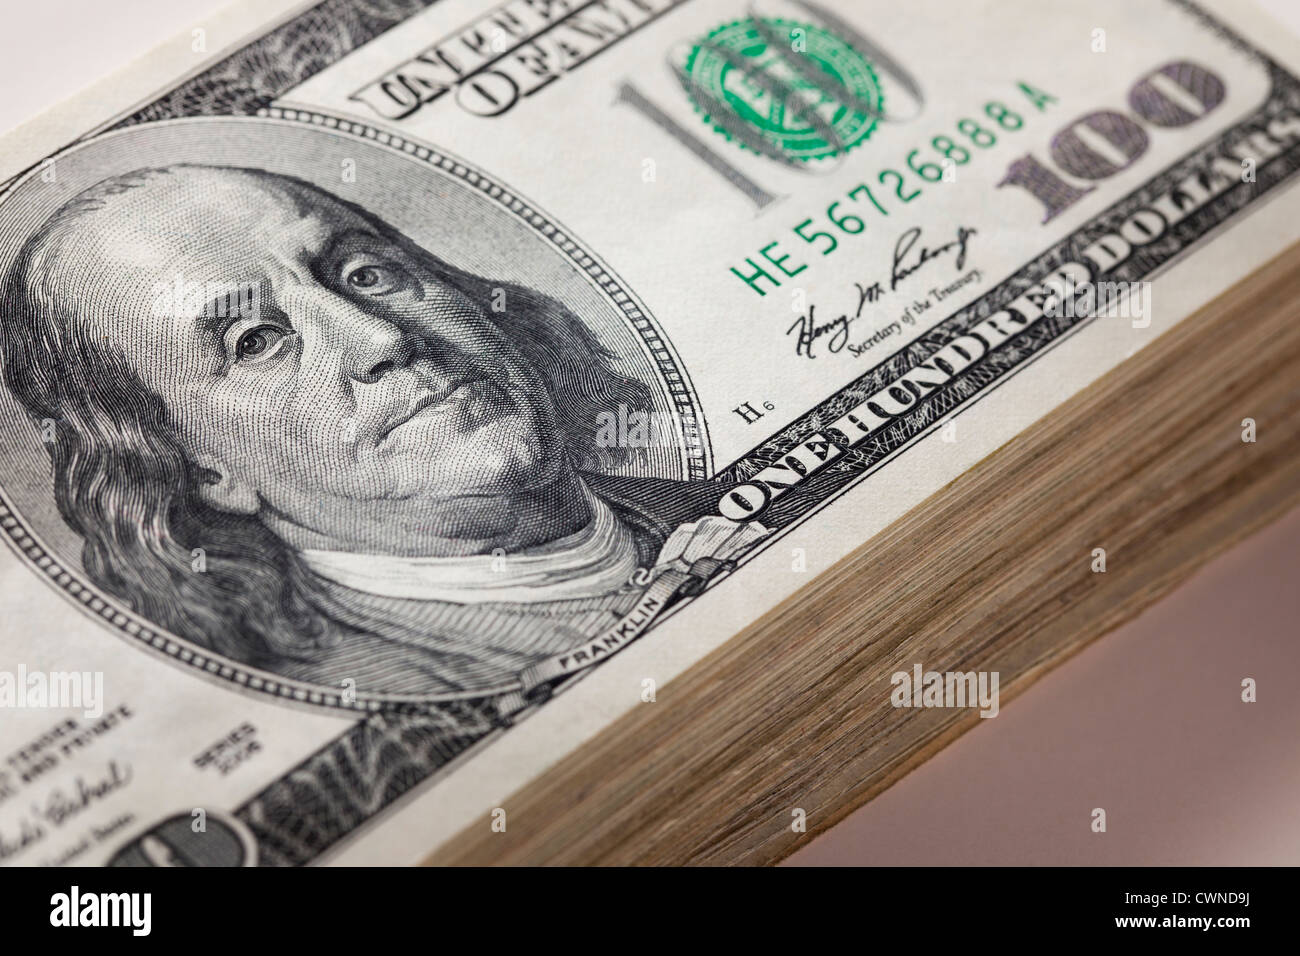 A stack of one hundred dollar bills - Stock Image